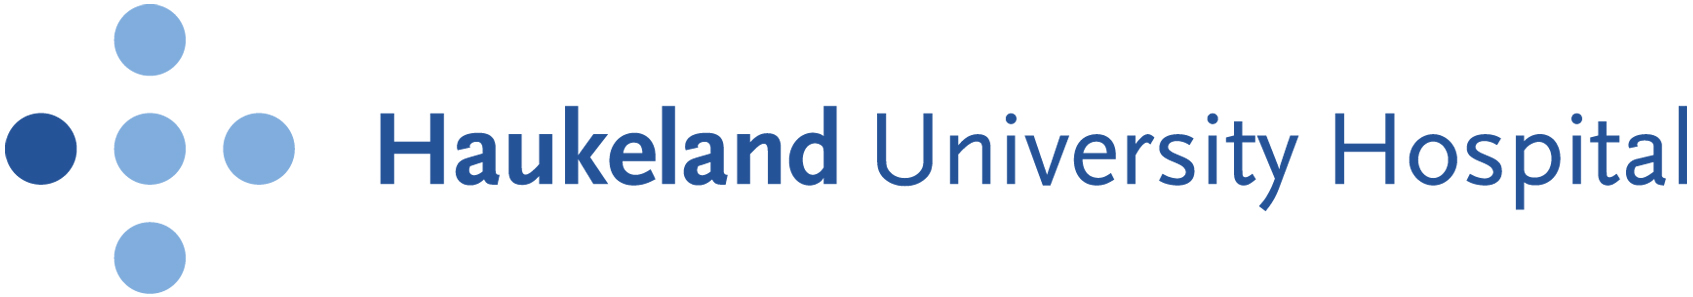 logo haukeland university hospital engelsk